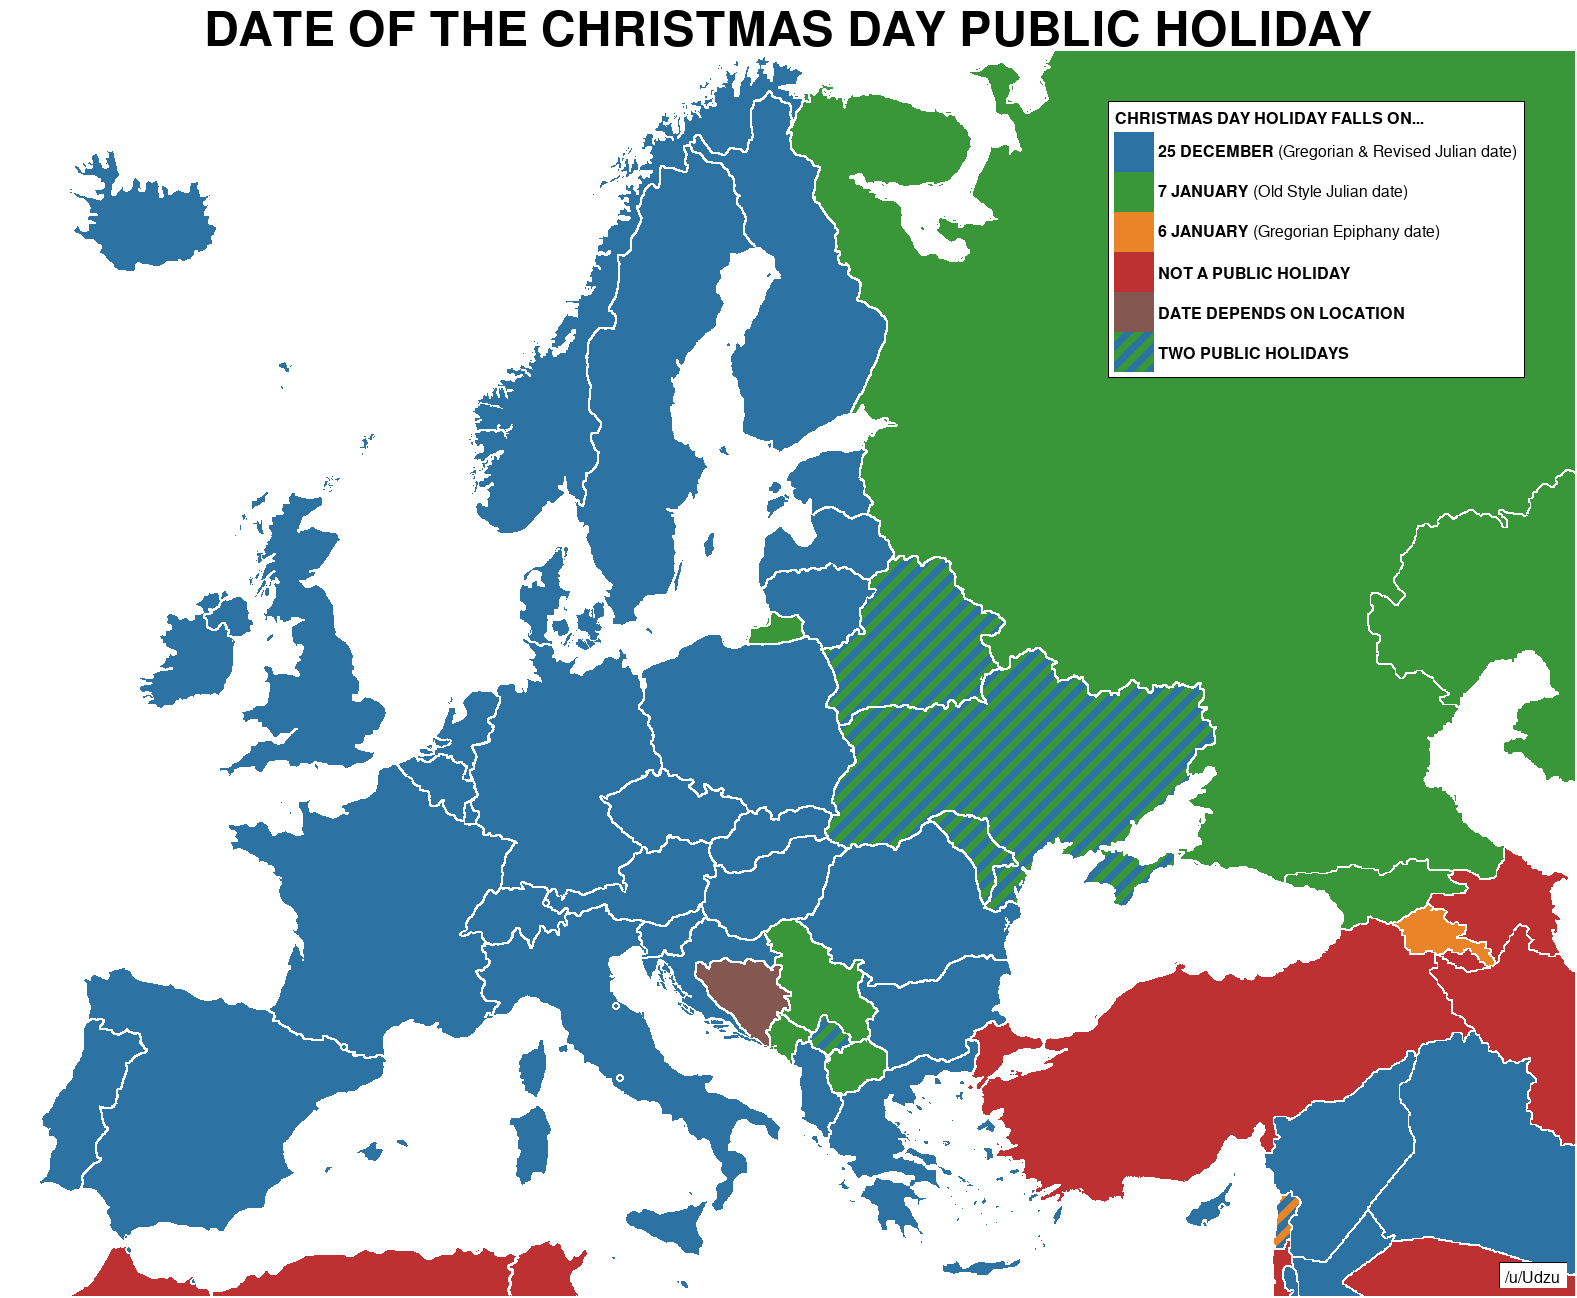 Date Of Christmas Day Public Holiday By Country Public Holidays Holiday Dates Holiday